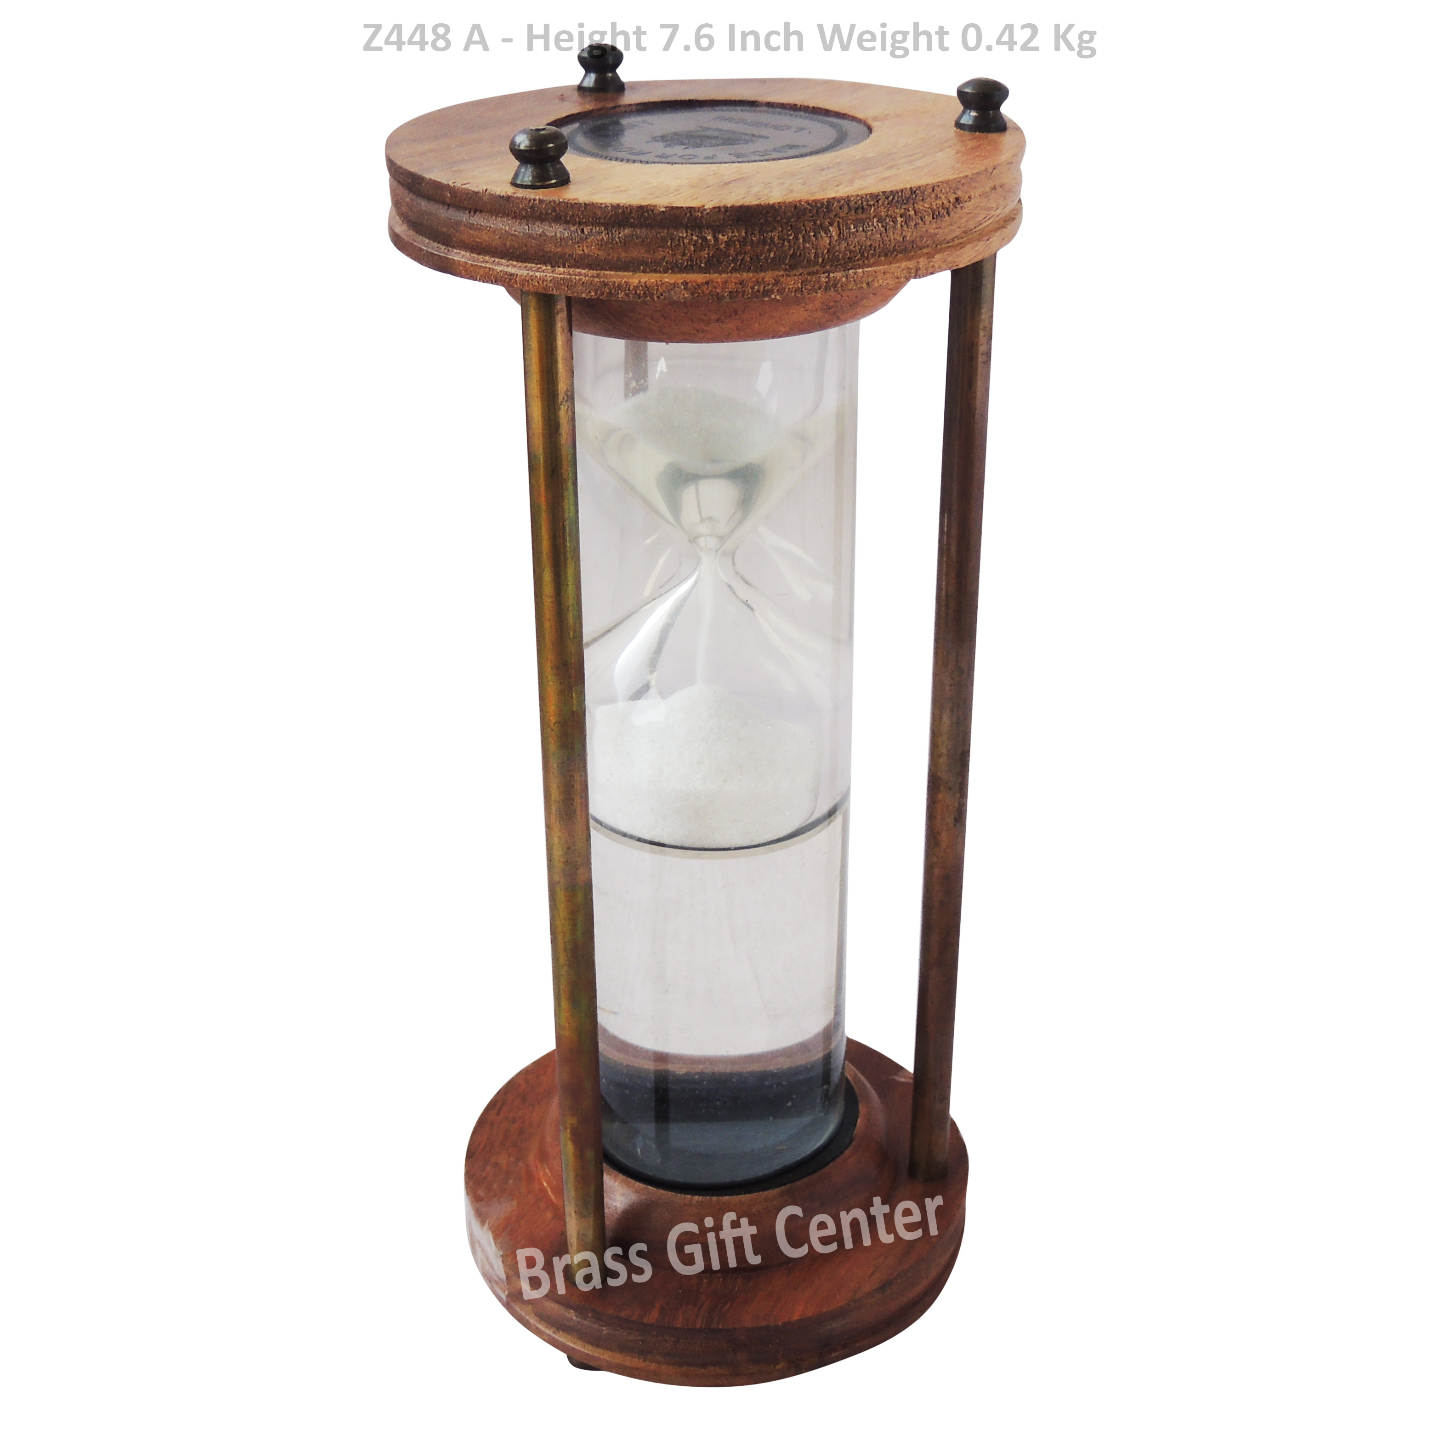 Brass Showpiece Sand Timer - 7.6 Inch (Z448 A)